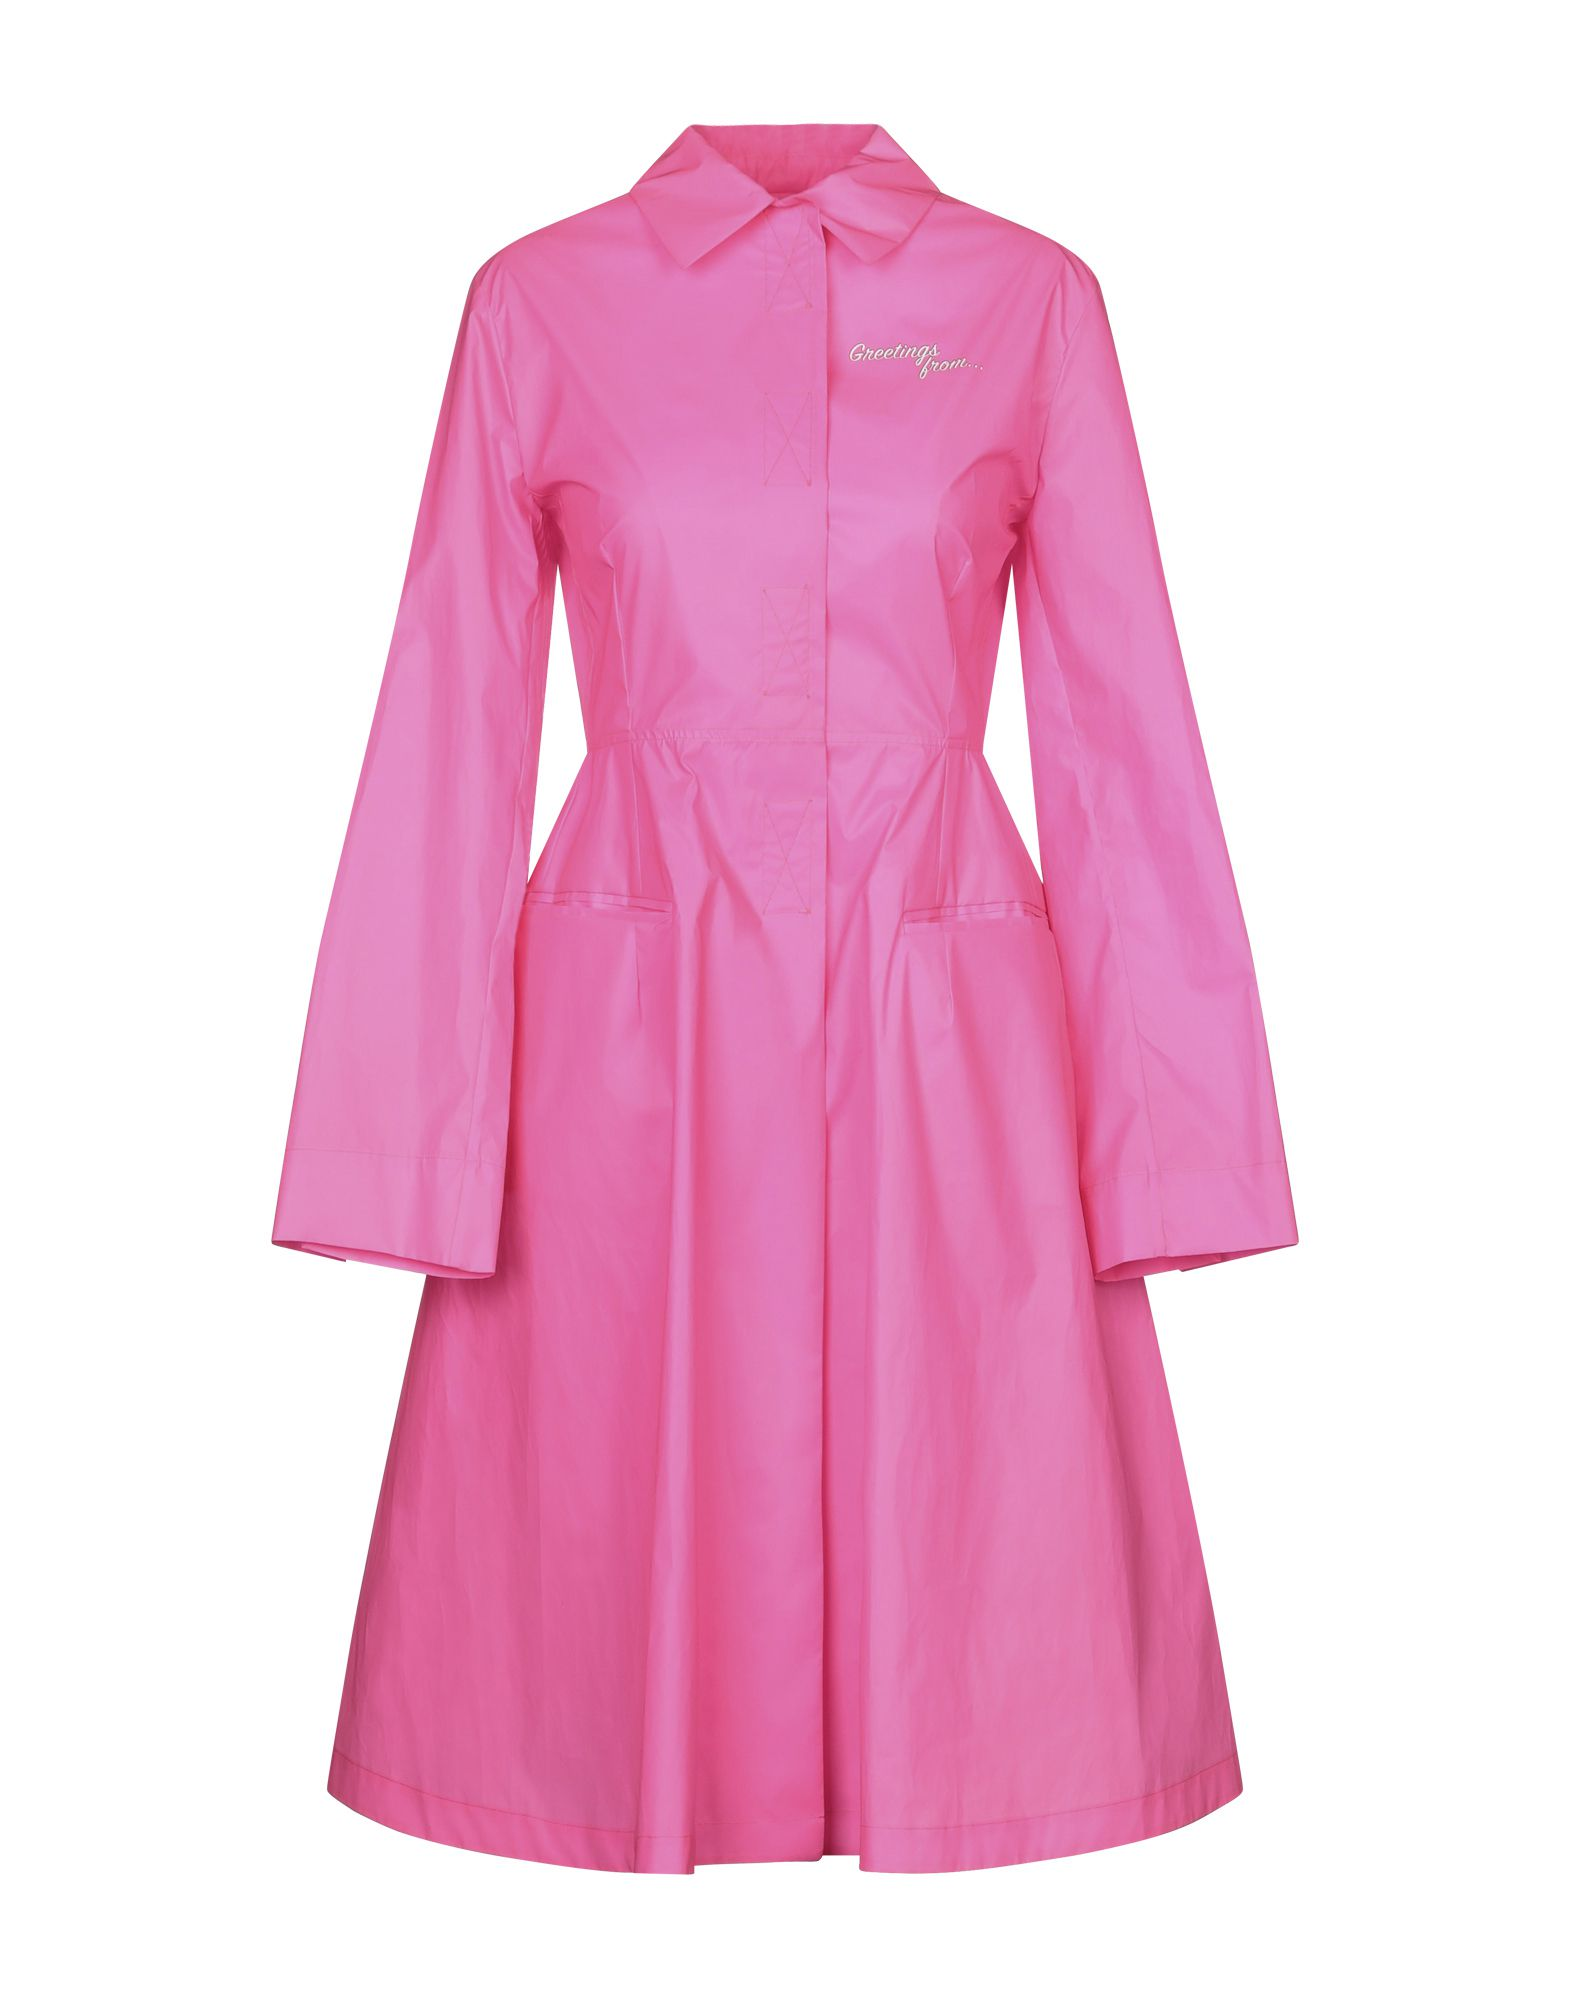 PALM ANGELS Overcoats. techno fabric, fluorescent, contrasting applications, solid color, single-breasted, velcro closure, classic neckline, multipockets, long sleeves, rear slit, unlined. 83% Polyester, 17% Polyurethane, PVC - Polyvinyl chloride, Acetate, Polyamide